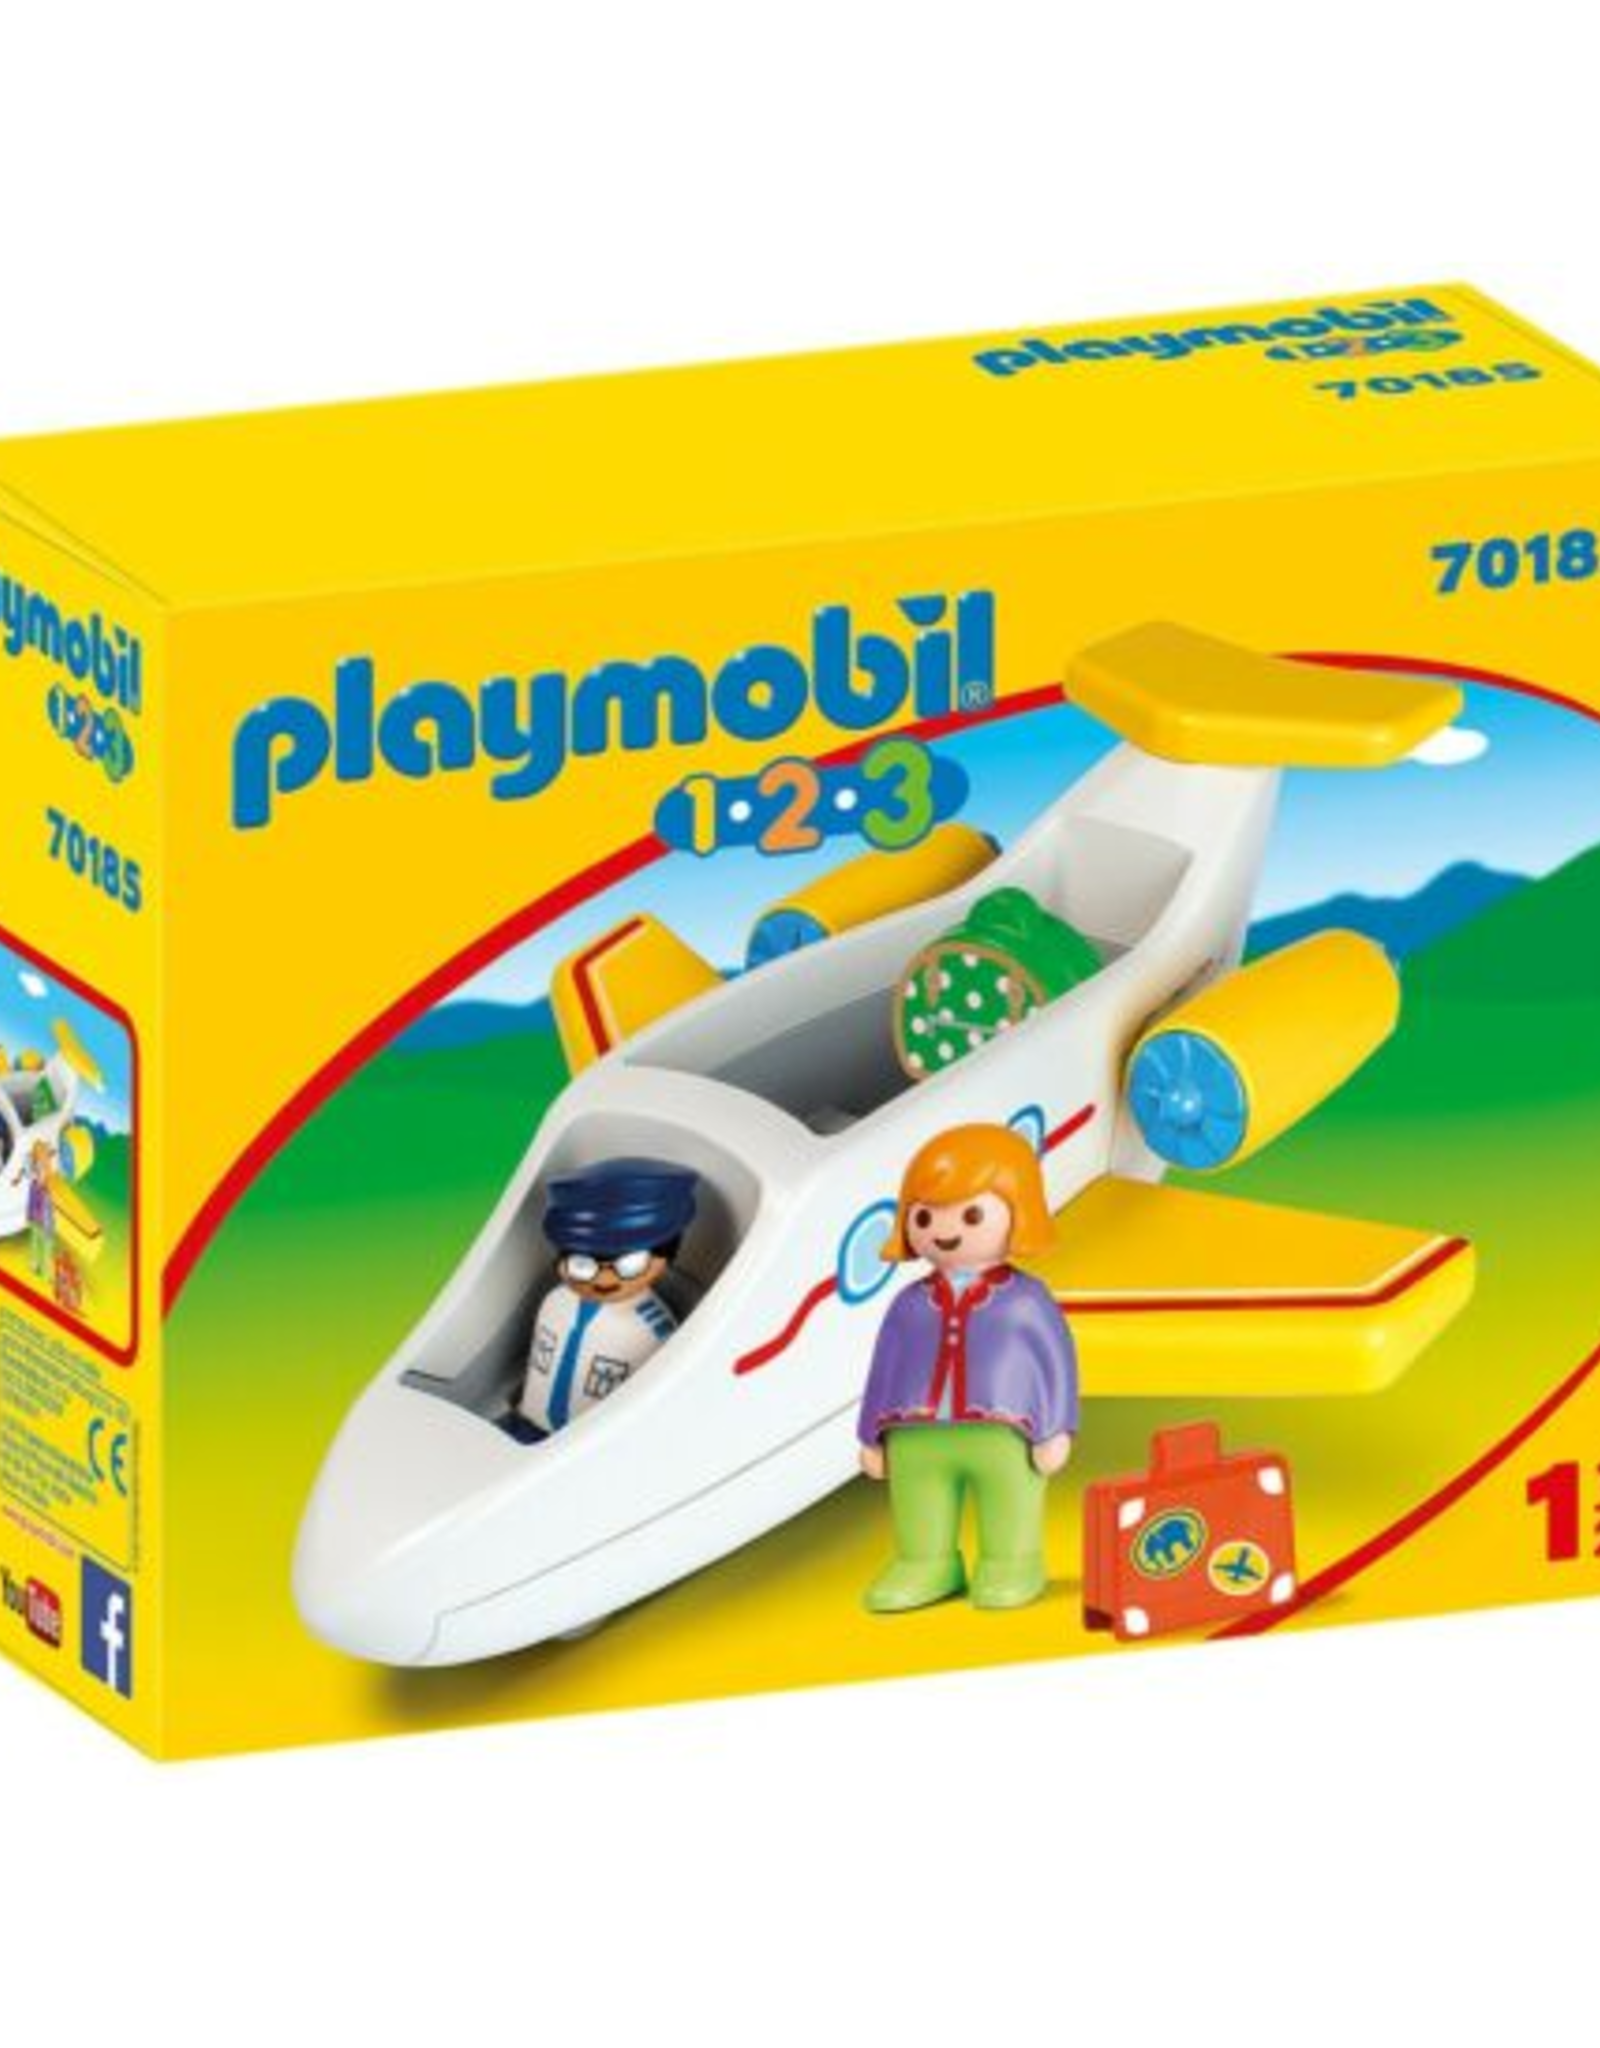 1-2-3 Airplane with Passenger